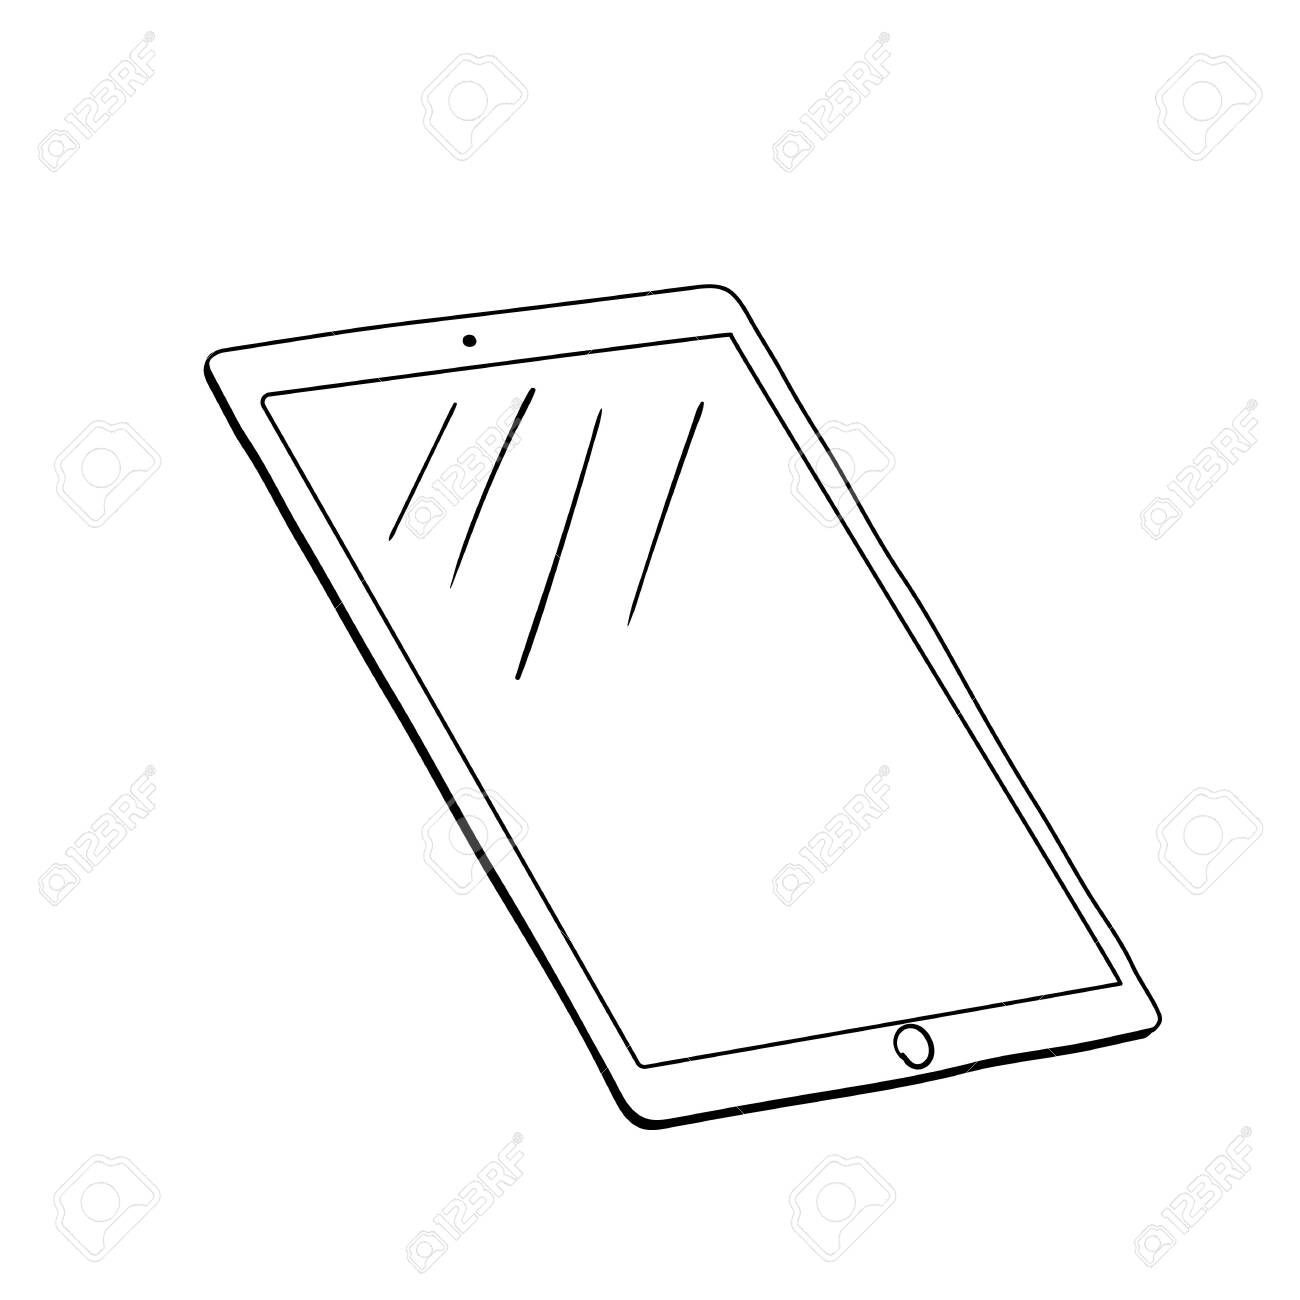 Digital drawing tablet contour illustration. Computer graphics...